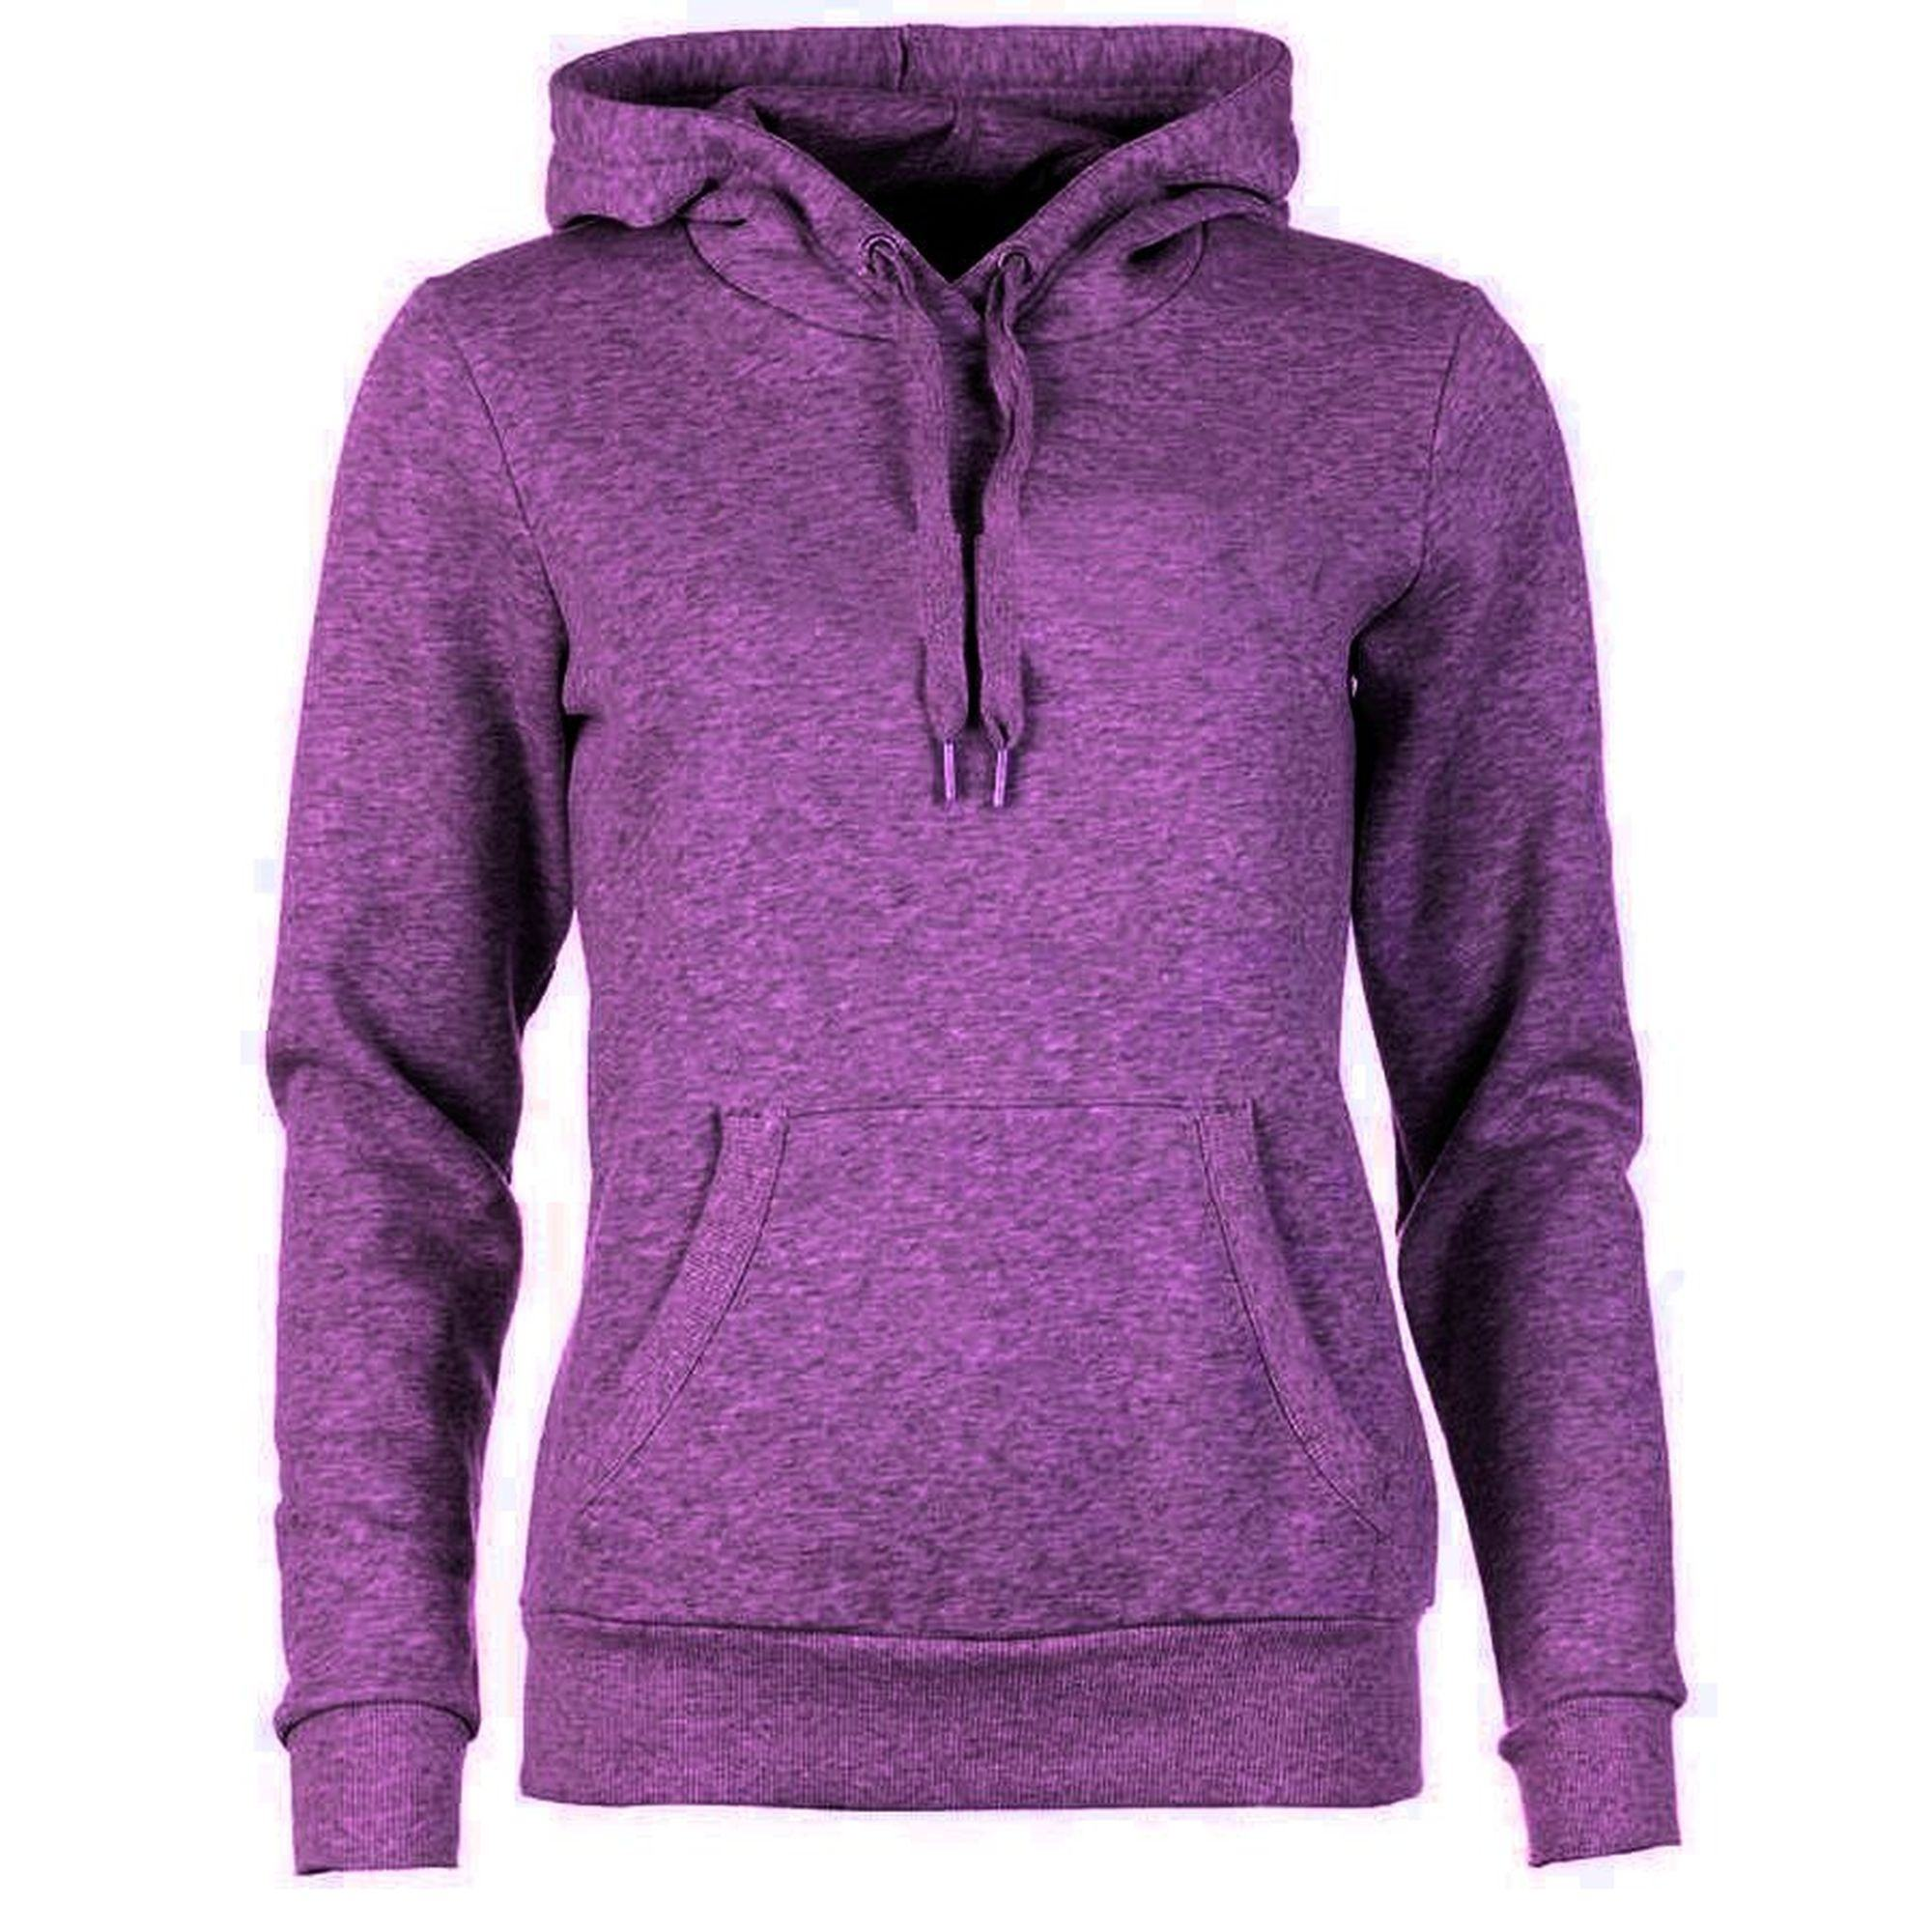 Plain Pullover hoodies for womens Custom Design Wholesale Hooded Cheap Price OEM Service pull over hoodies